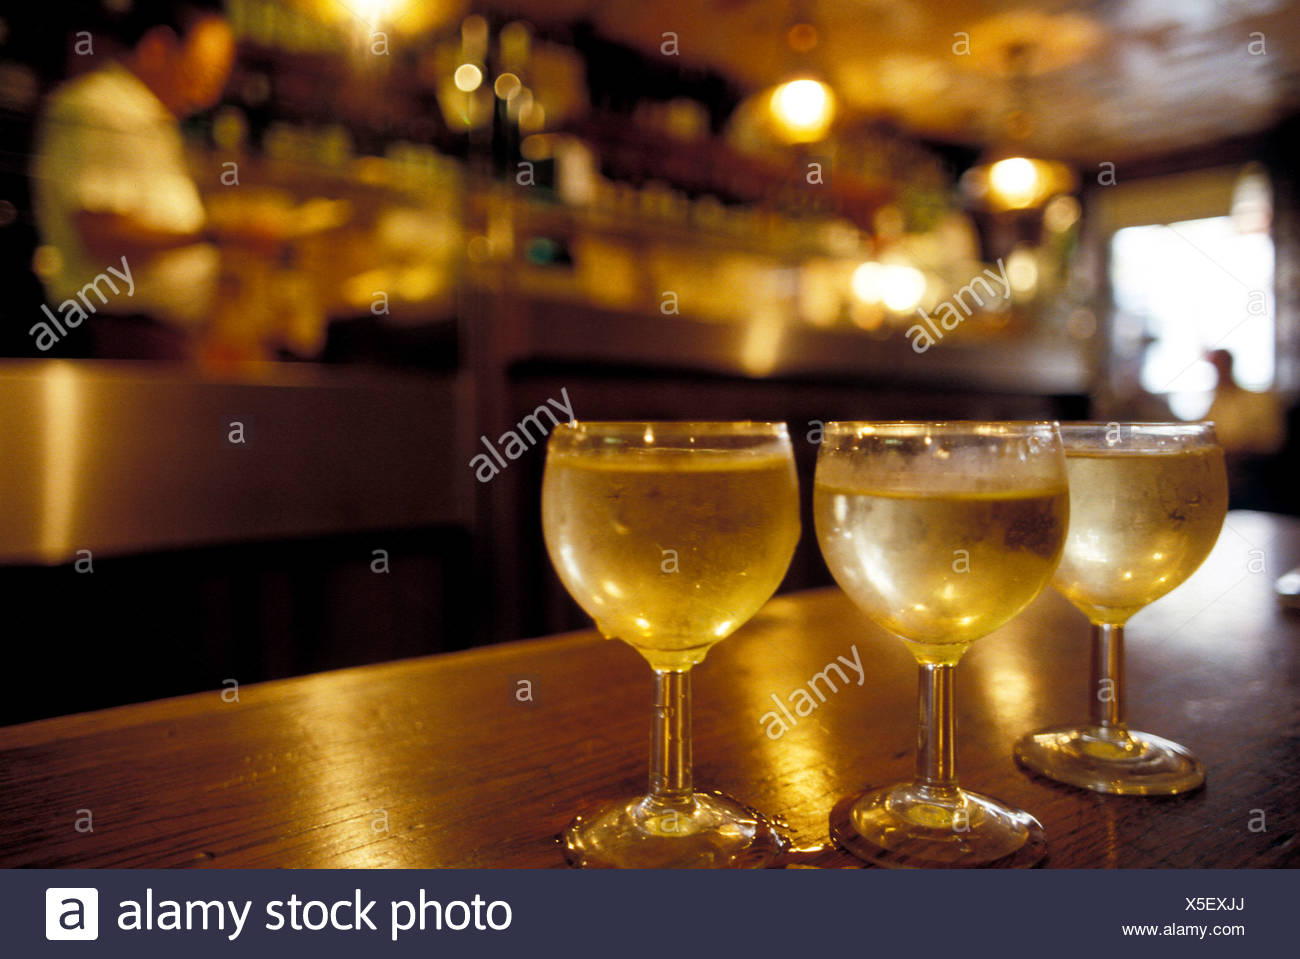 Glasses of white wine on bar counter - Stock Image